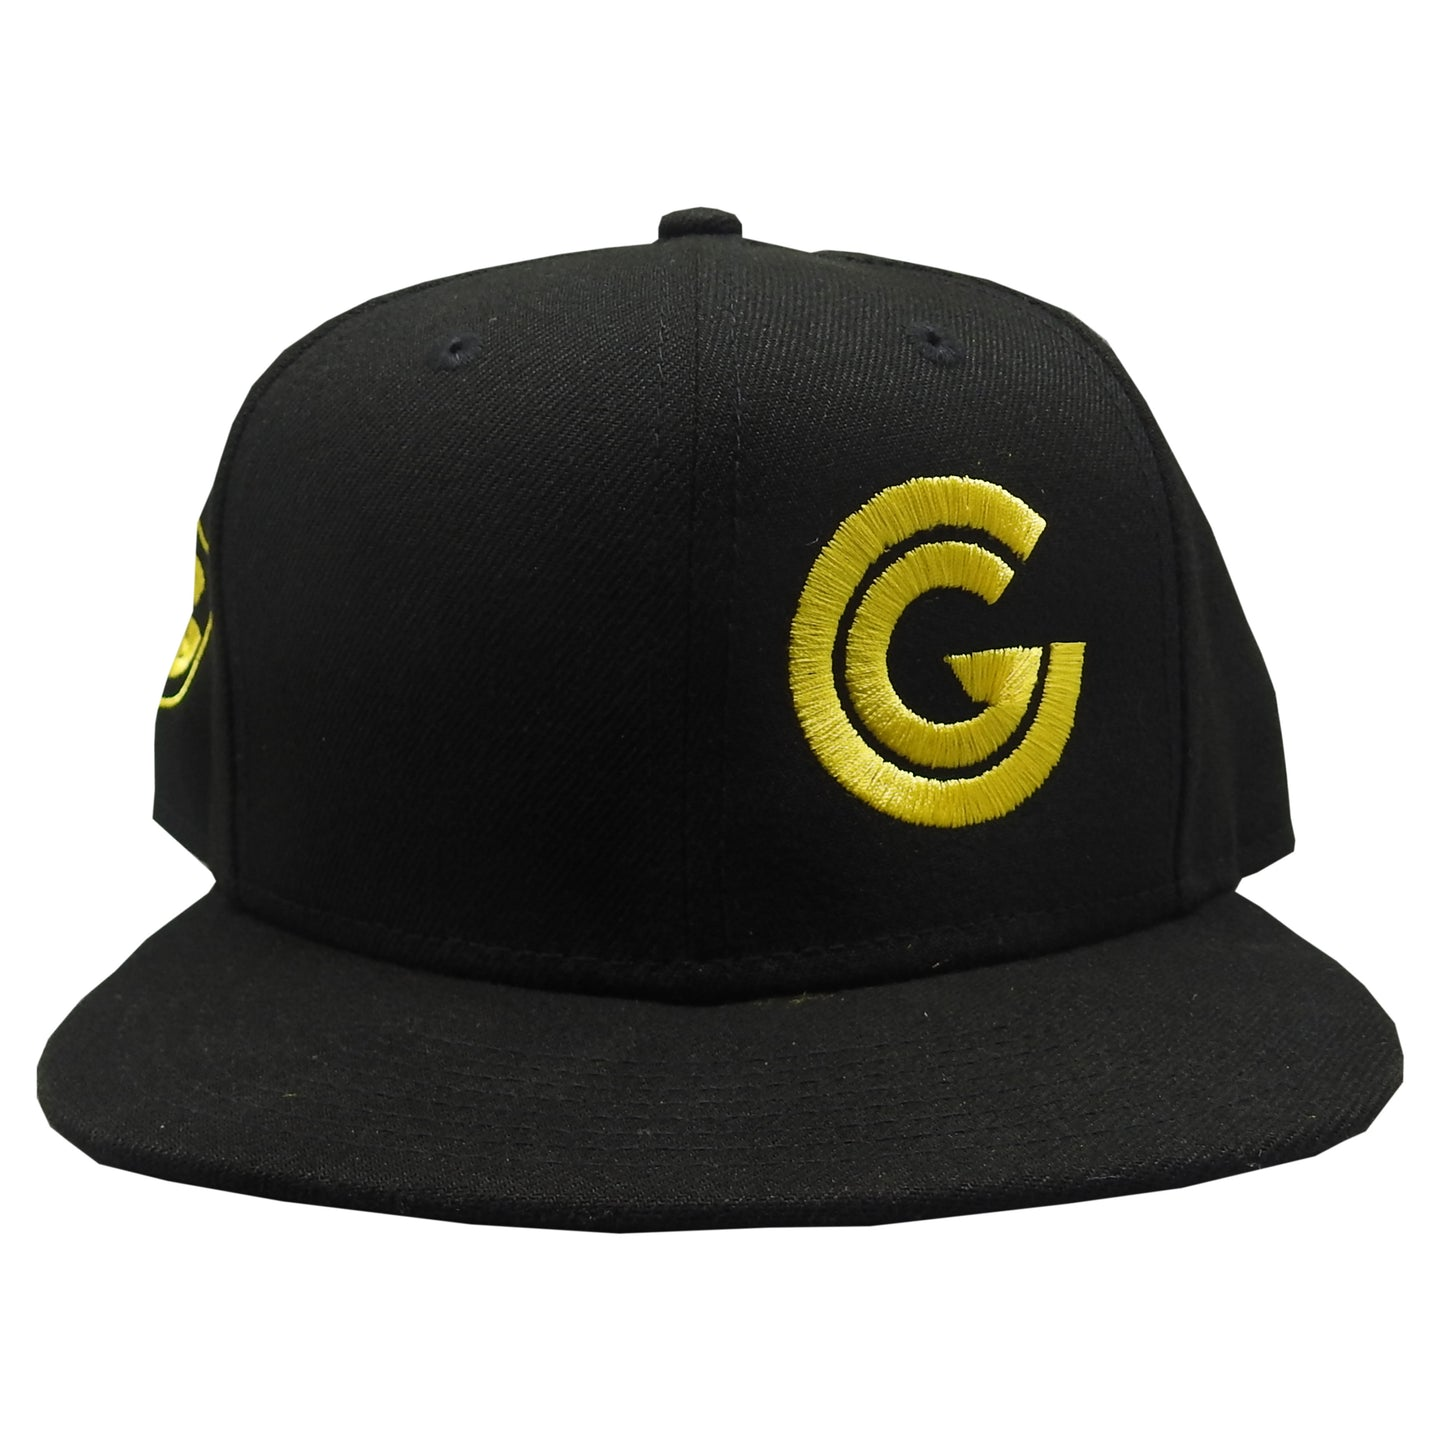 CG '59 Series Hat